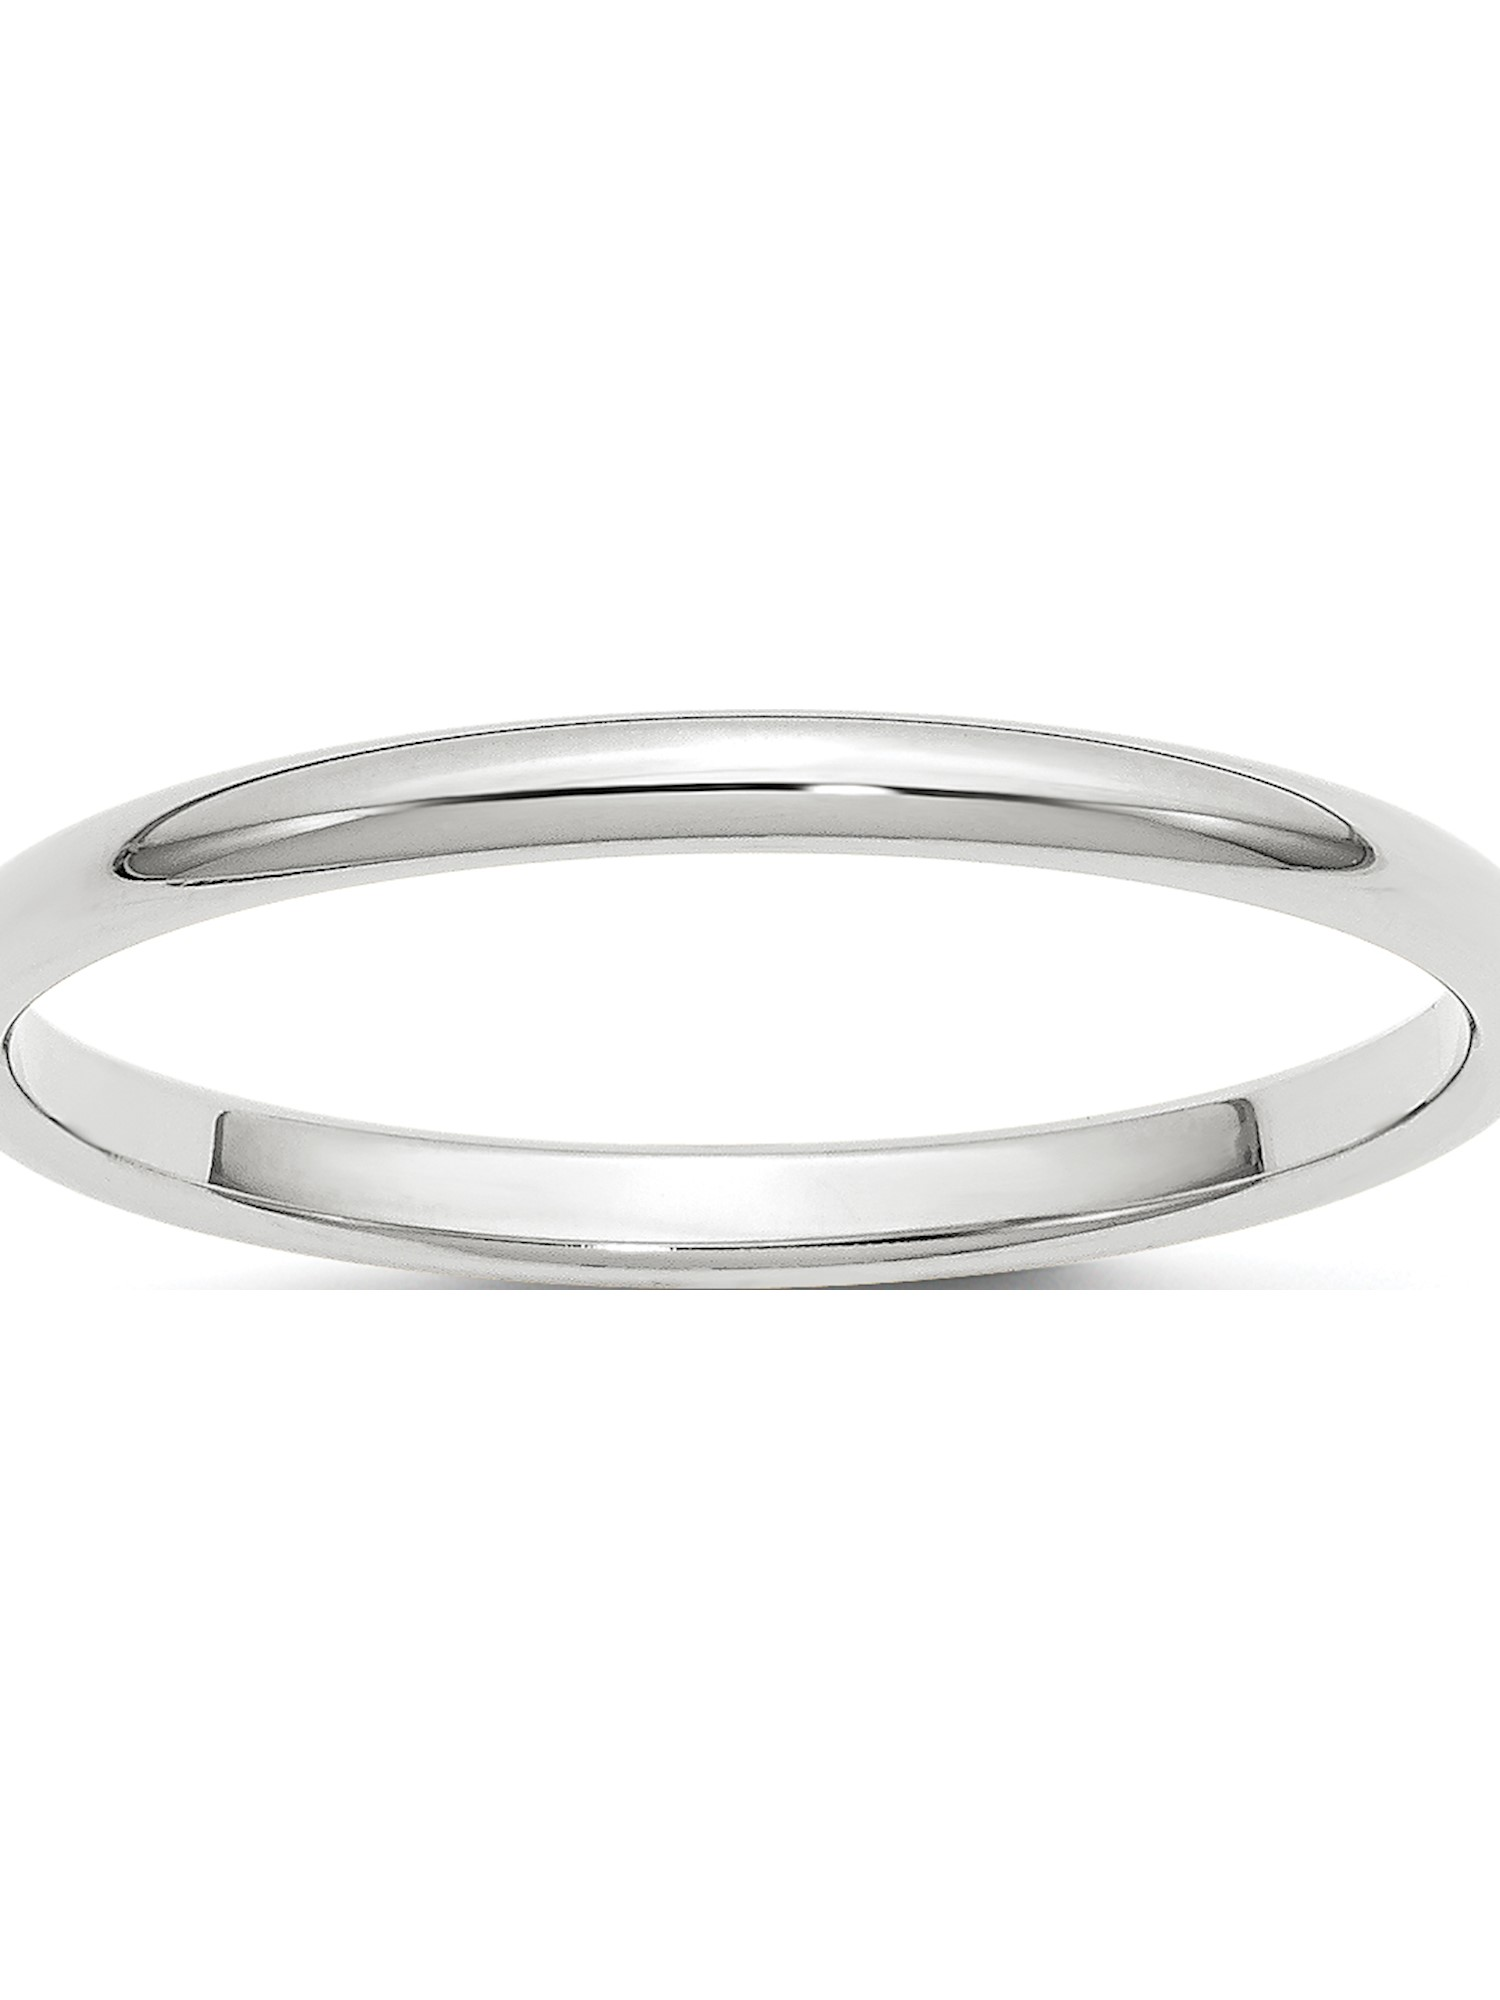 10KY 4mm Half Round Band Size 8.5 Size 8.5 Length Width 4